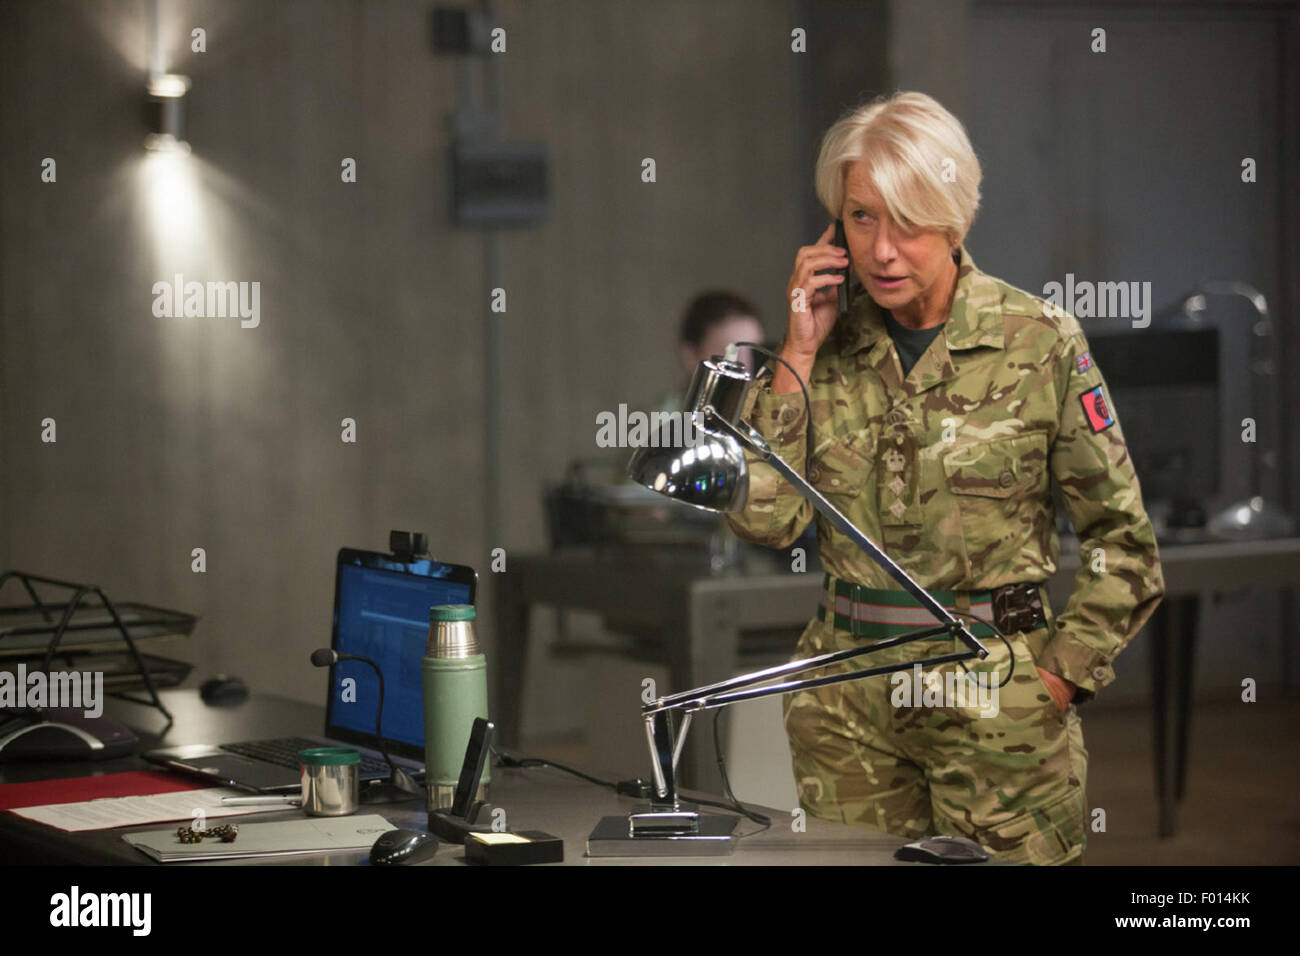 Eye in the Sky is an upcoming thriller film starring Helen Mirren, Aaron Paul, Alan Rickman, and Barkhad Abdi.  - Stock Image